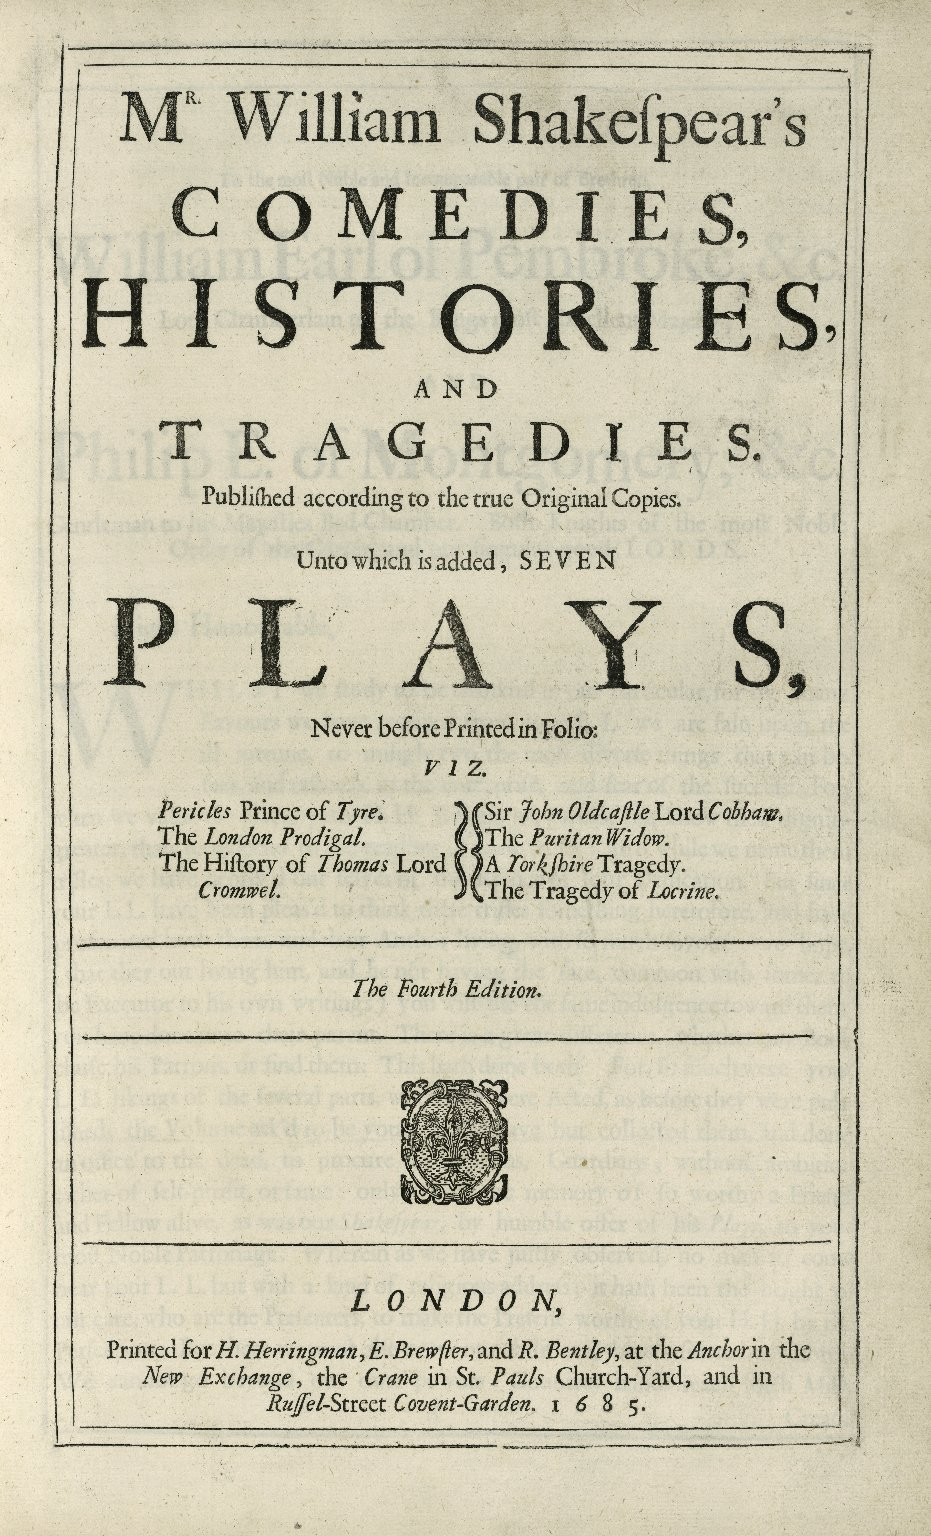 Mr. William Shakespear's comedies, histories, and tragedies…